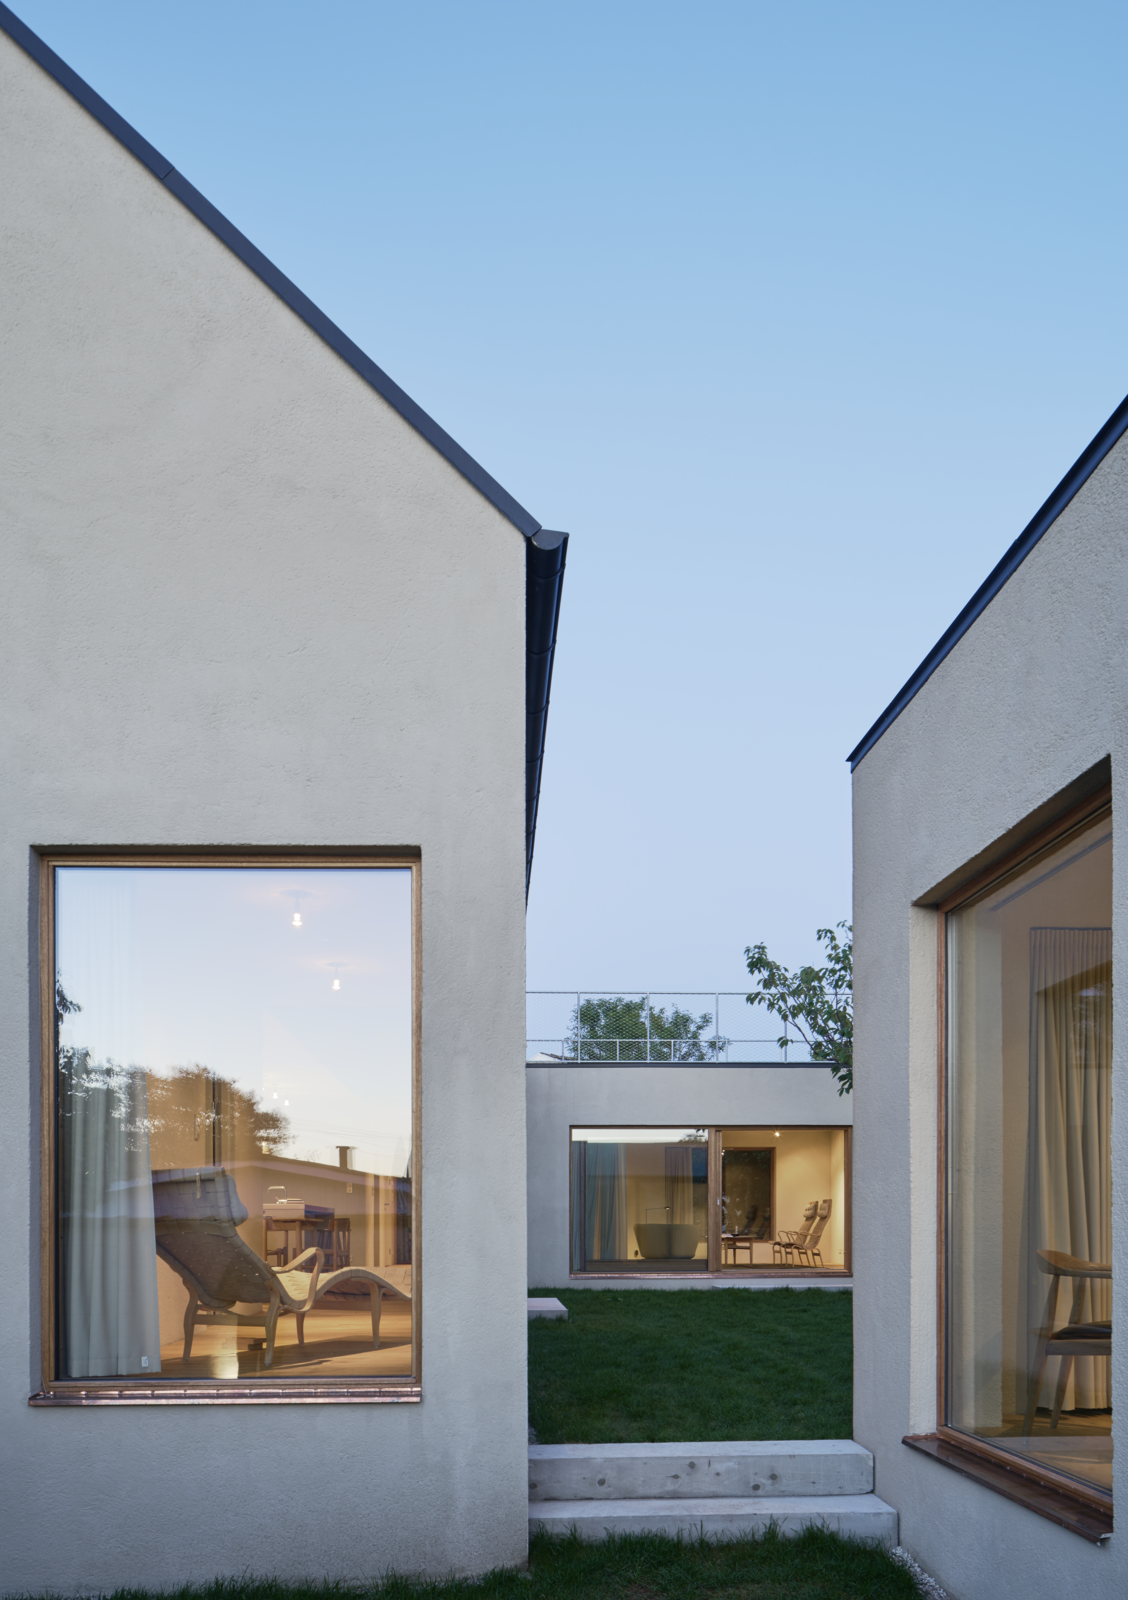 Windows, Casement Window Type, and Metal  Photo 12 of 12 in Sleek Scandinavian Design Permeates a Family's Summer House in an Old Fishing Village